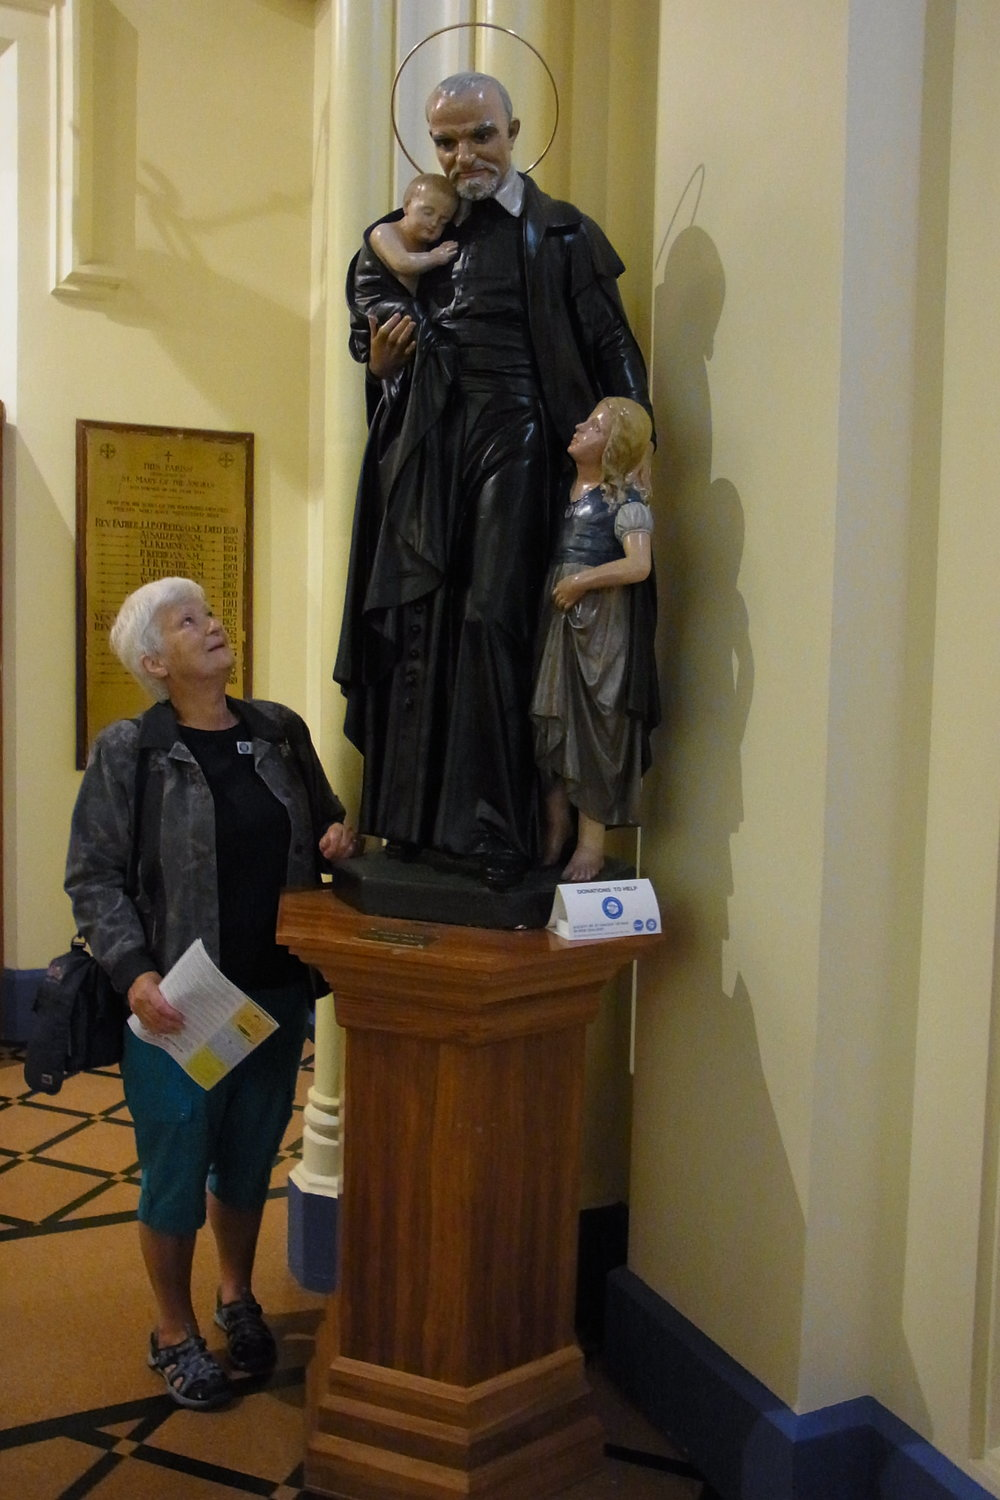 Steph at St Mary's of the Angels with a statue of St Vincent de Paul.